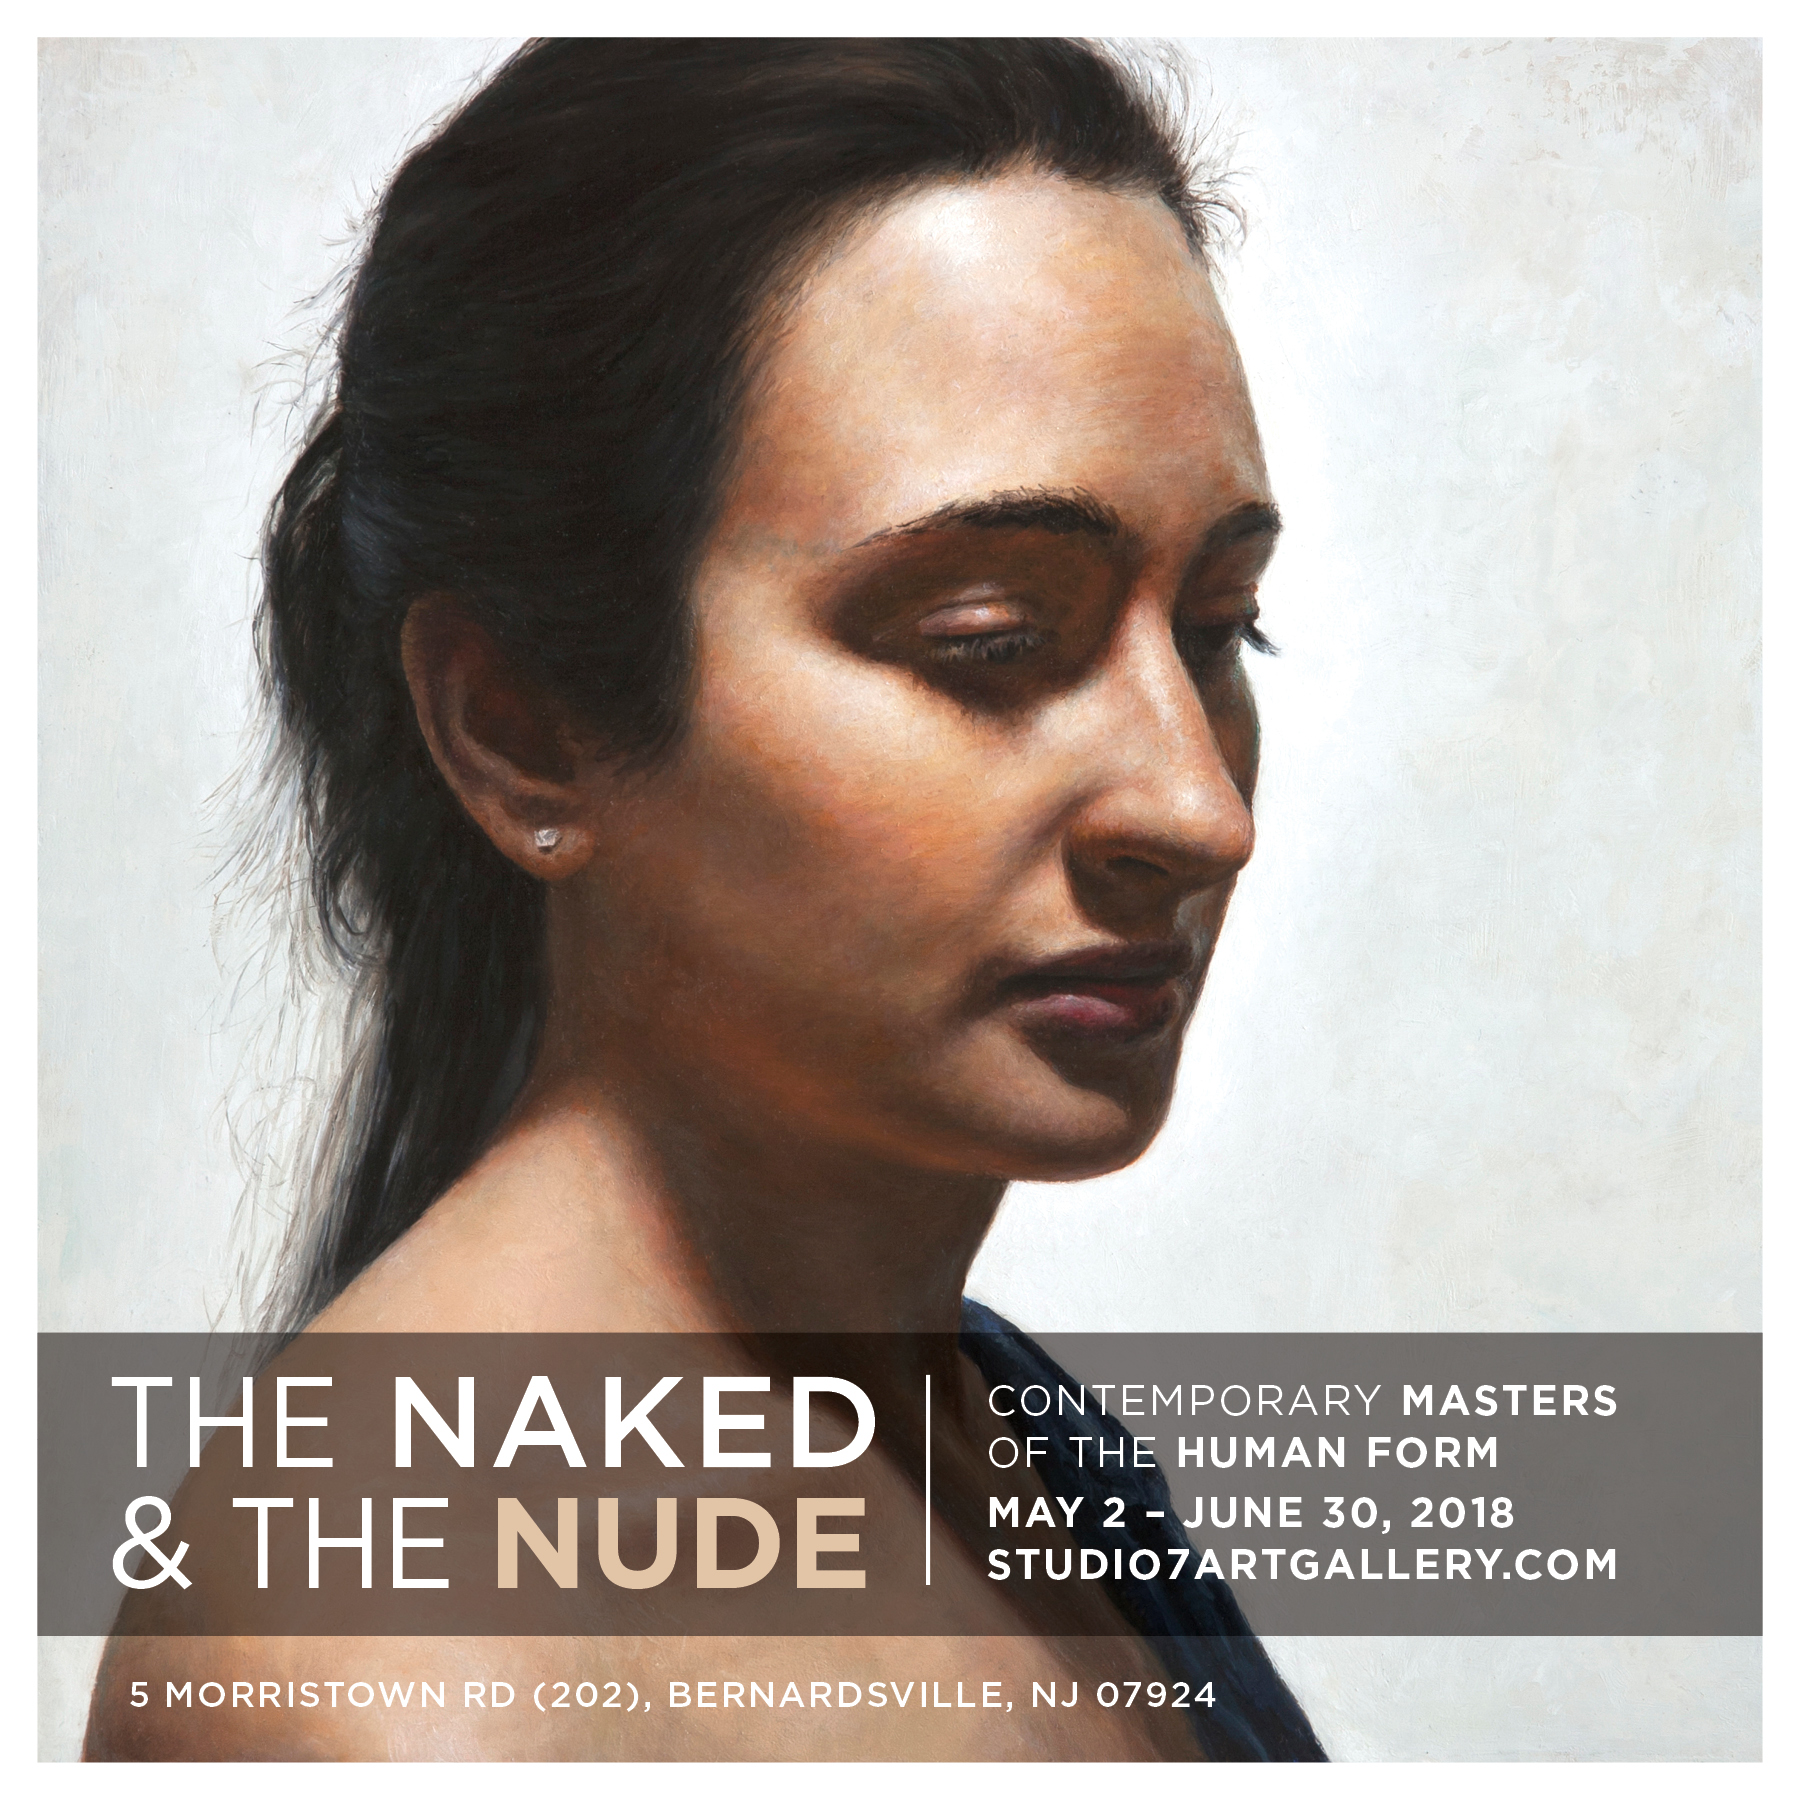 The Naked & The Nude